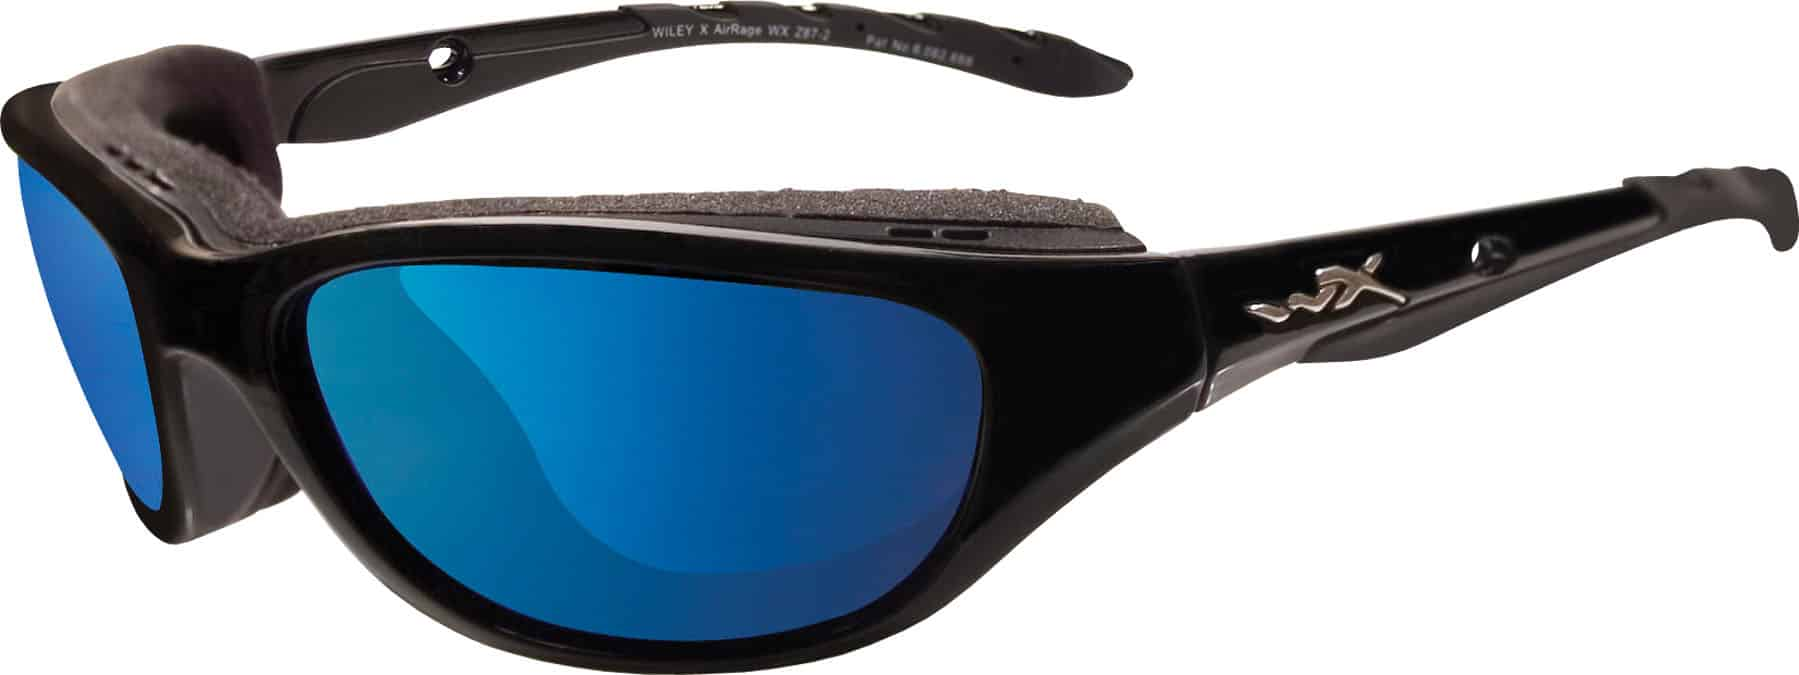 Airrage Climate Controlled Sunglasses 4